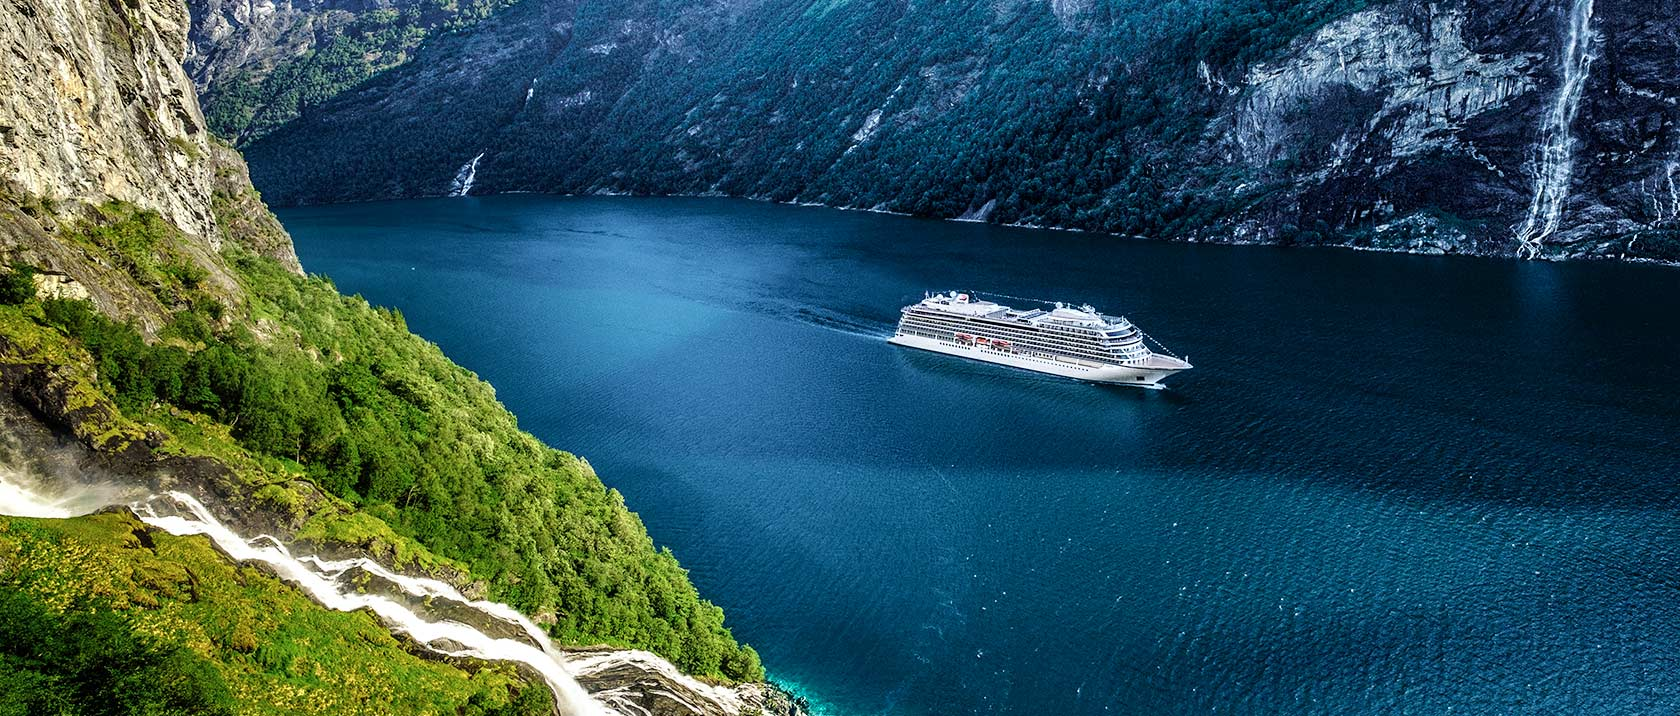 Viking ocean ship sailing through a Scandinavian fjord